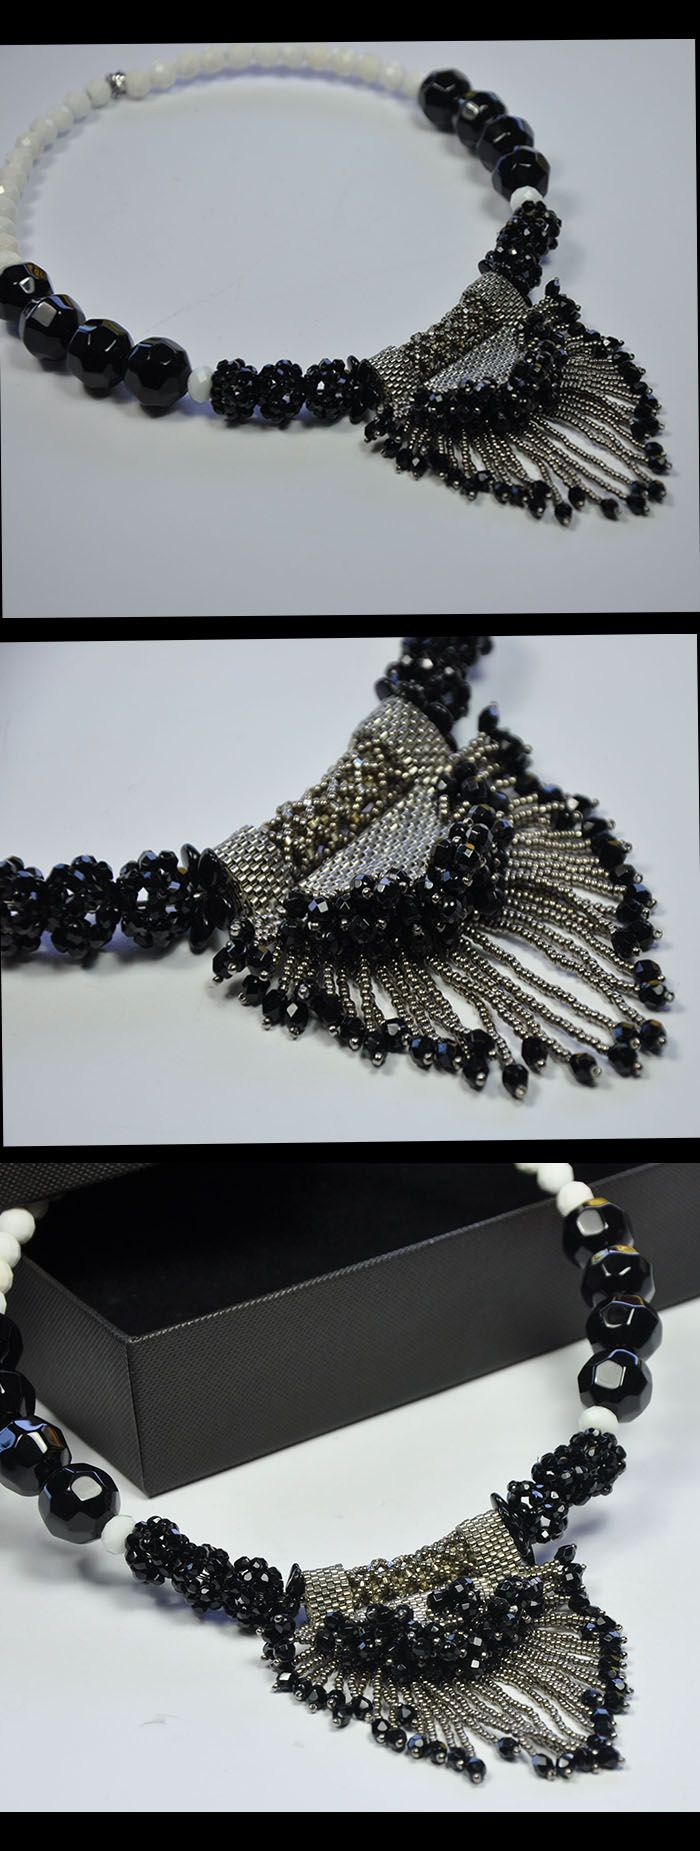 Superb Boho Choker , handmade with pearls ,white Agate and ONYX ,the pendant made with grain beads and small drops in ONYX,   The collar is 14 cm diameter  Total lengh/circumference total 40cm The pendant is 7cm longh  OFFER 10%Discount until 15th May Coupon Code: GLITZY1960